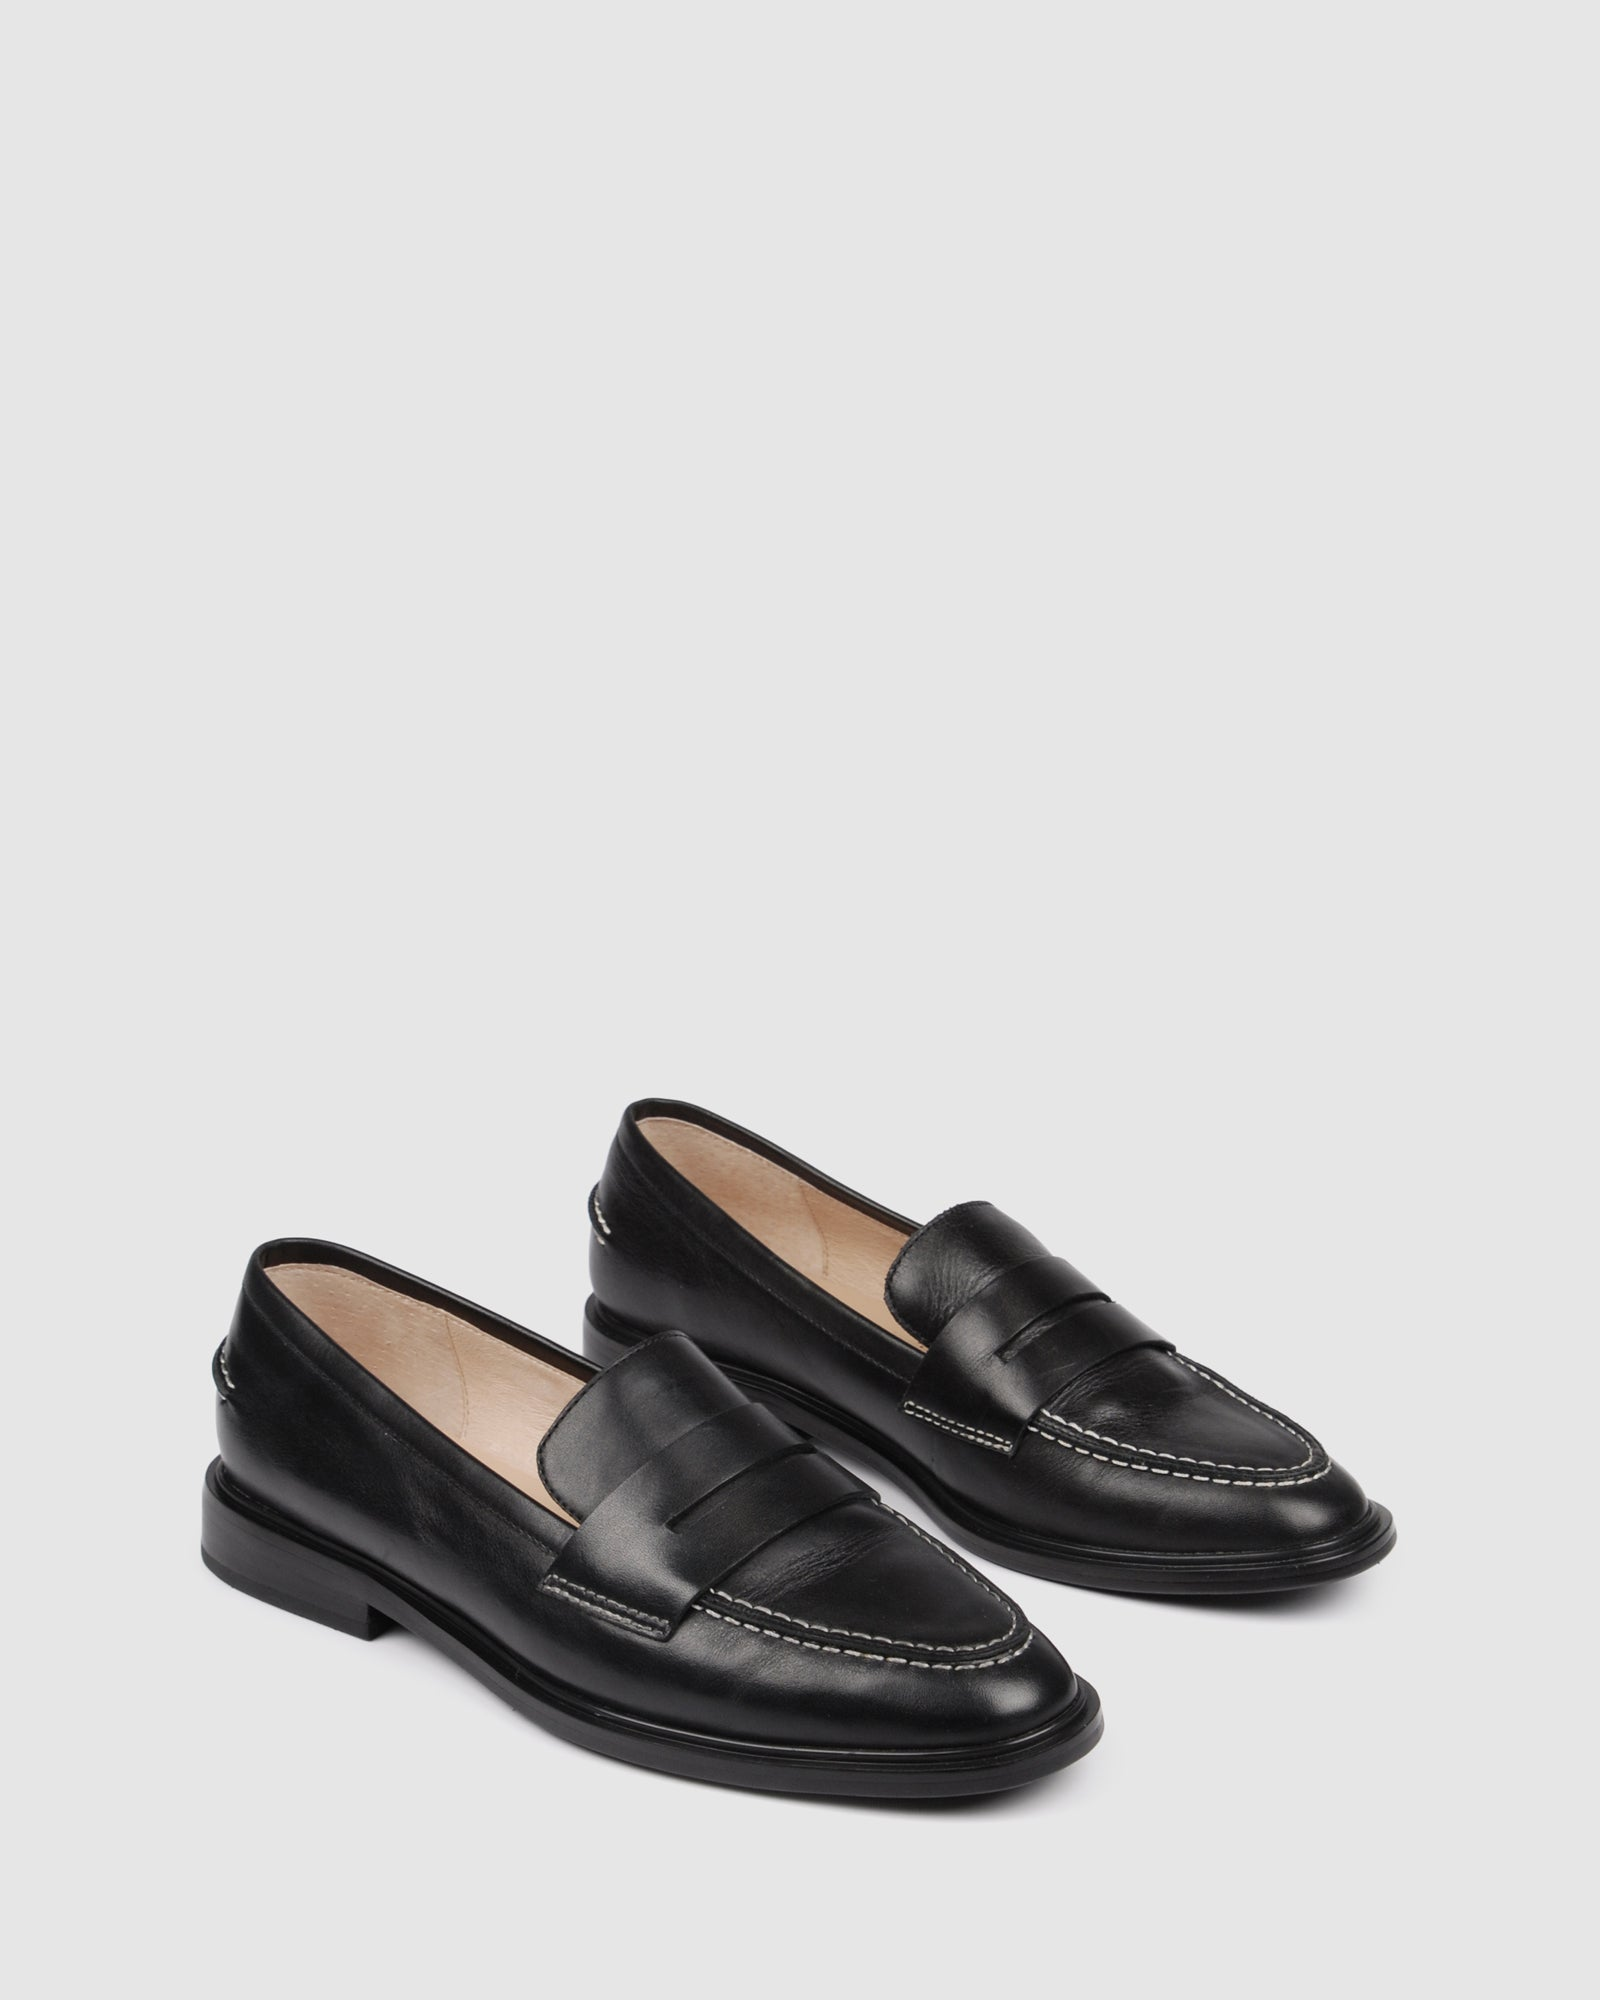 HAMMOND LOAFERS BLACK LEATHER